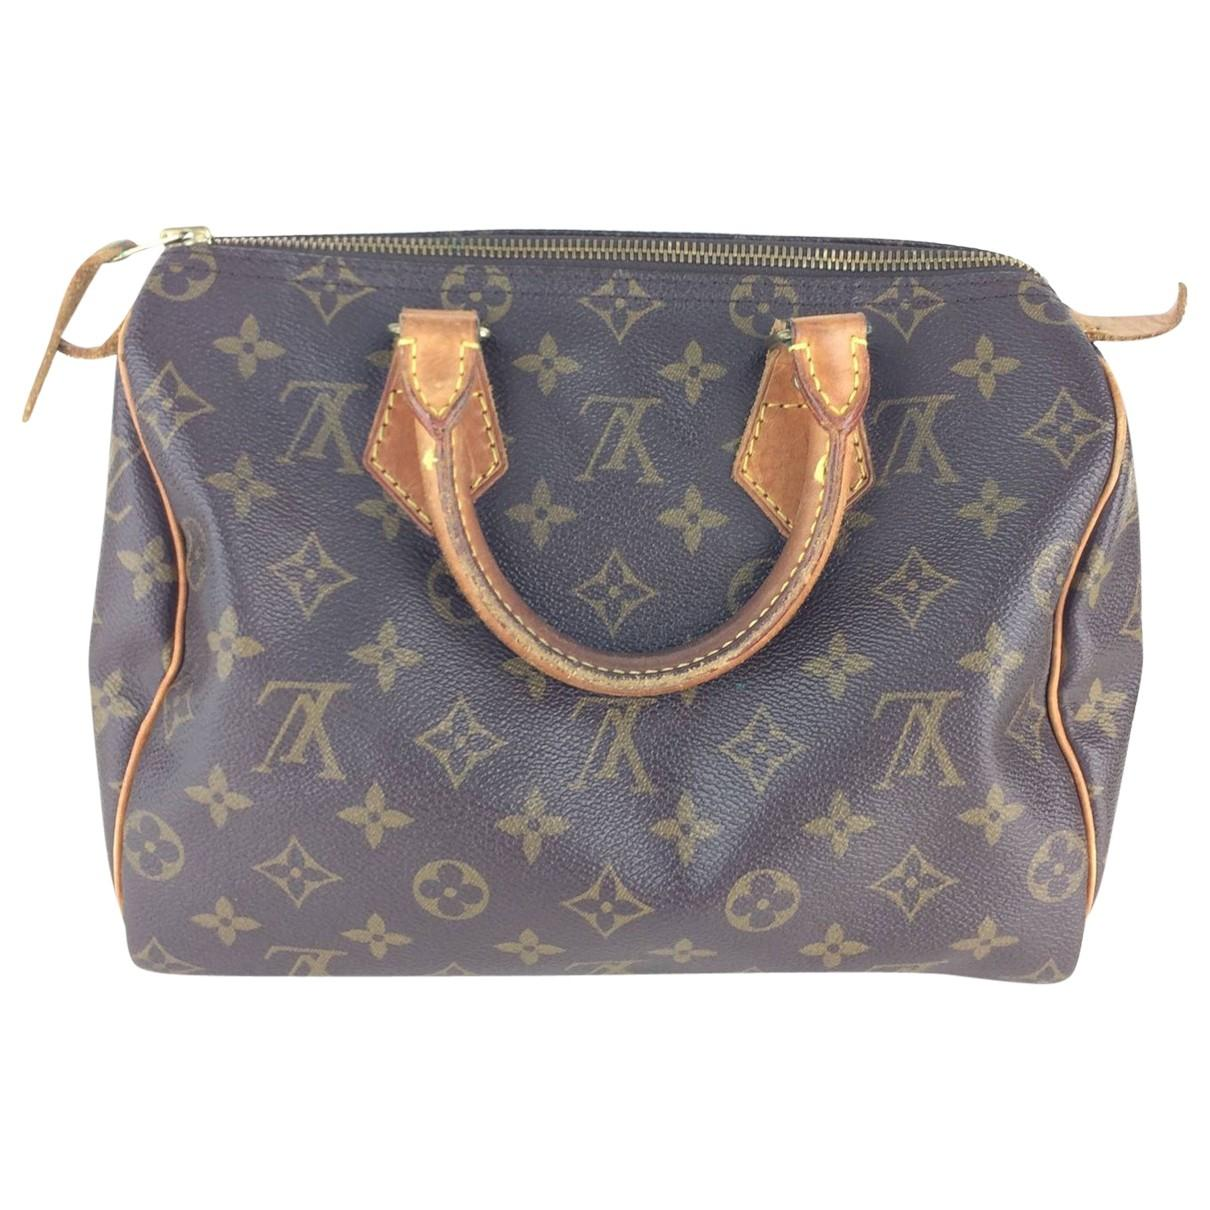 bd6a8401 Louis Vuitton Pre-owned Vintage Speedy Brown Cloth Handbag in Brown ...